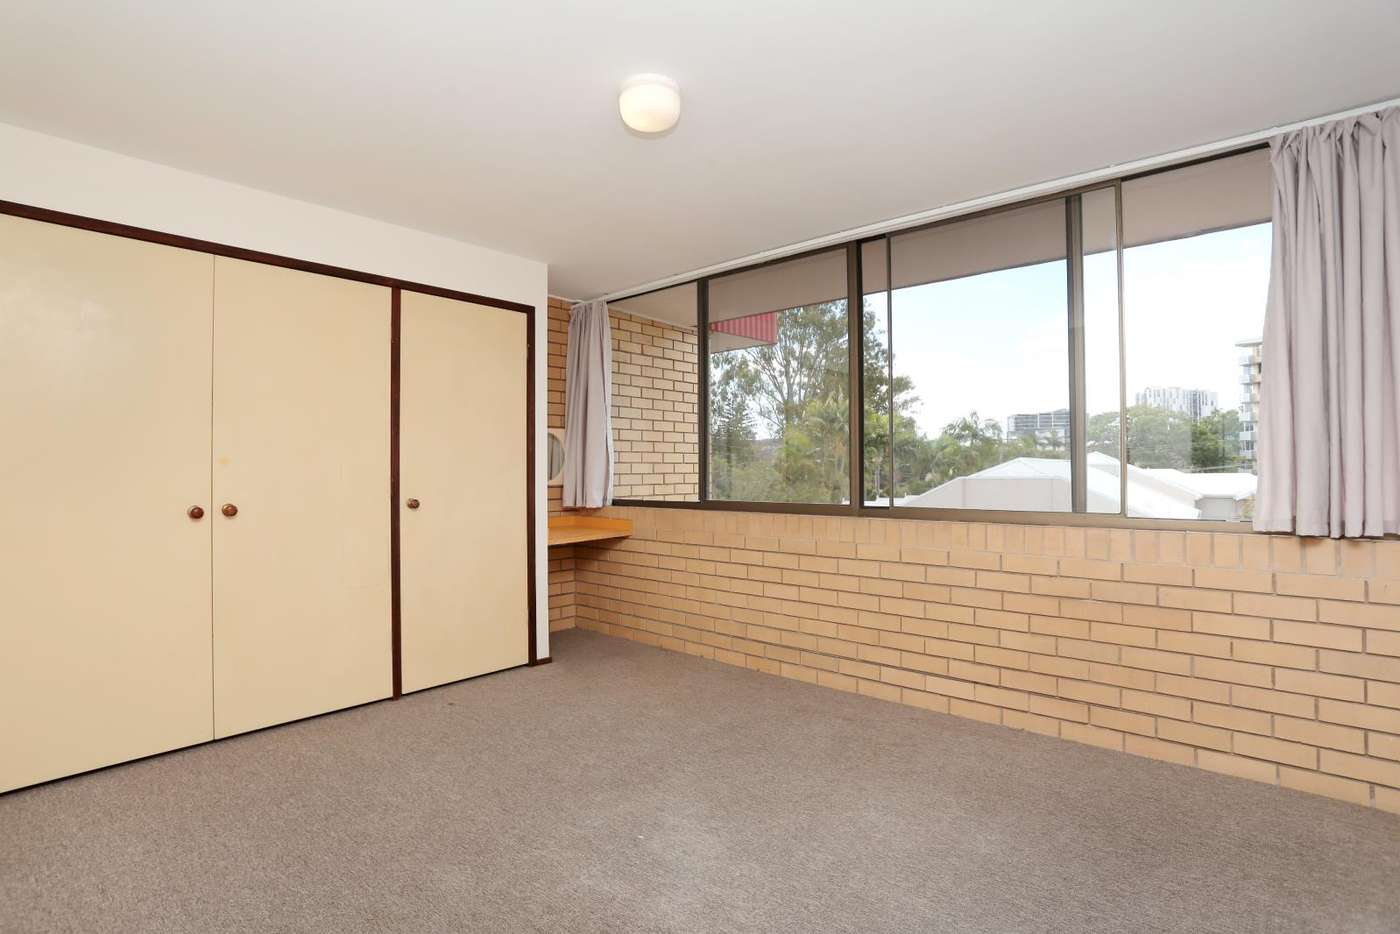 Fifth view of Homely unit listing, 6/16 Gailey Road, St Lucia QLD 4067